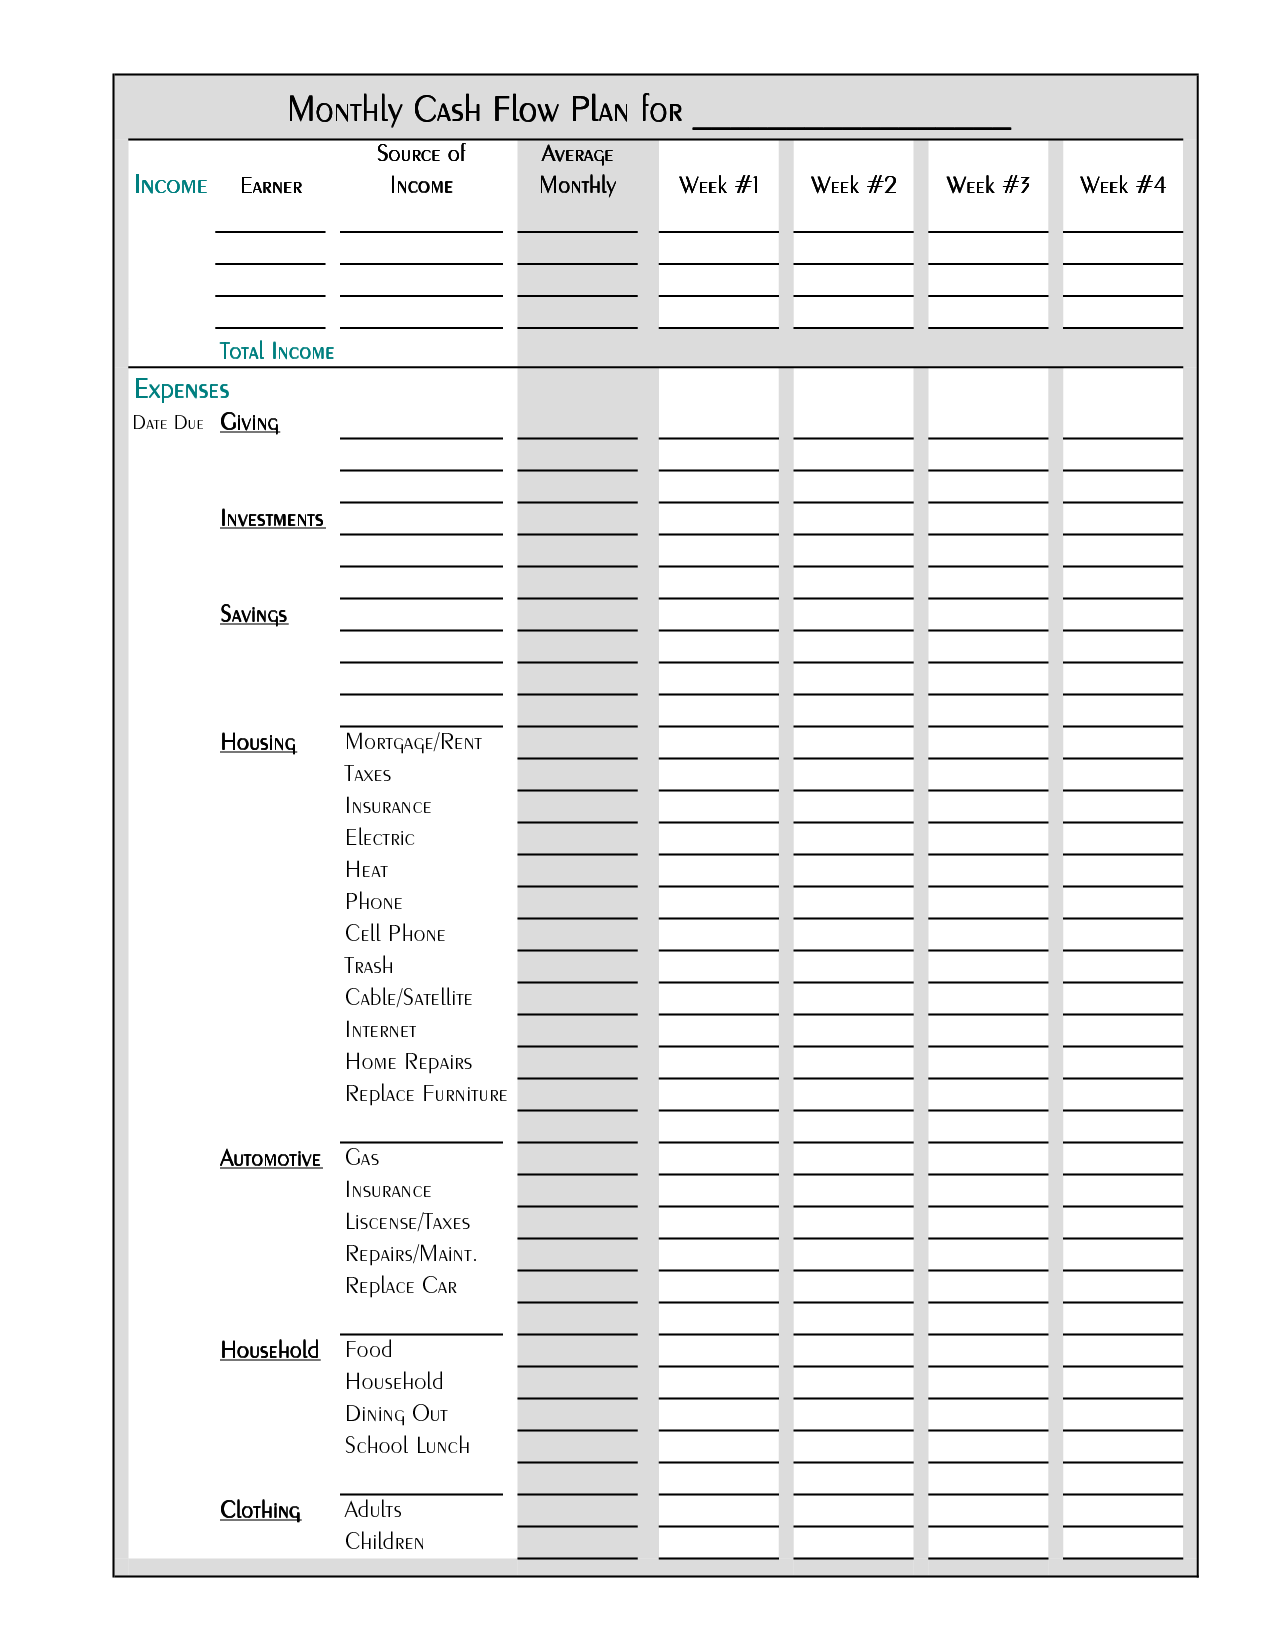 Budget Printable Images Gallery Category Page 2